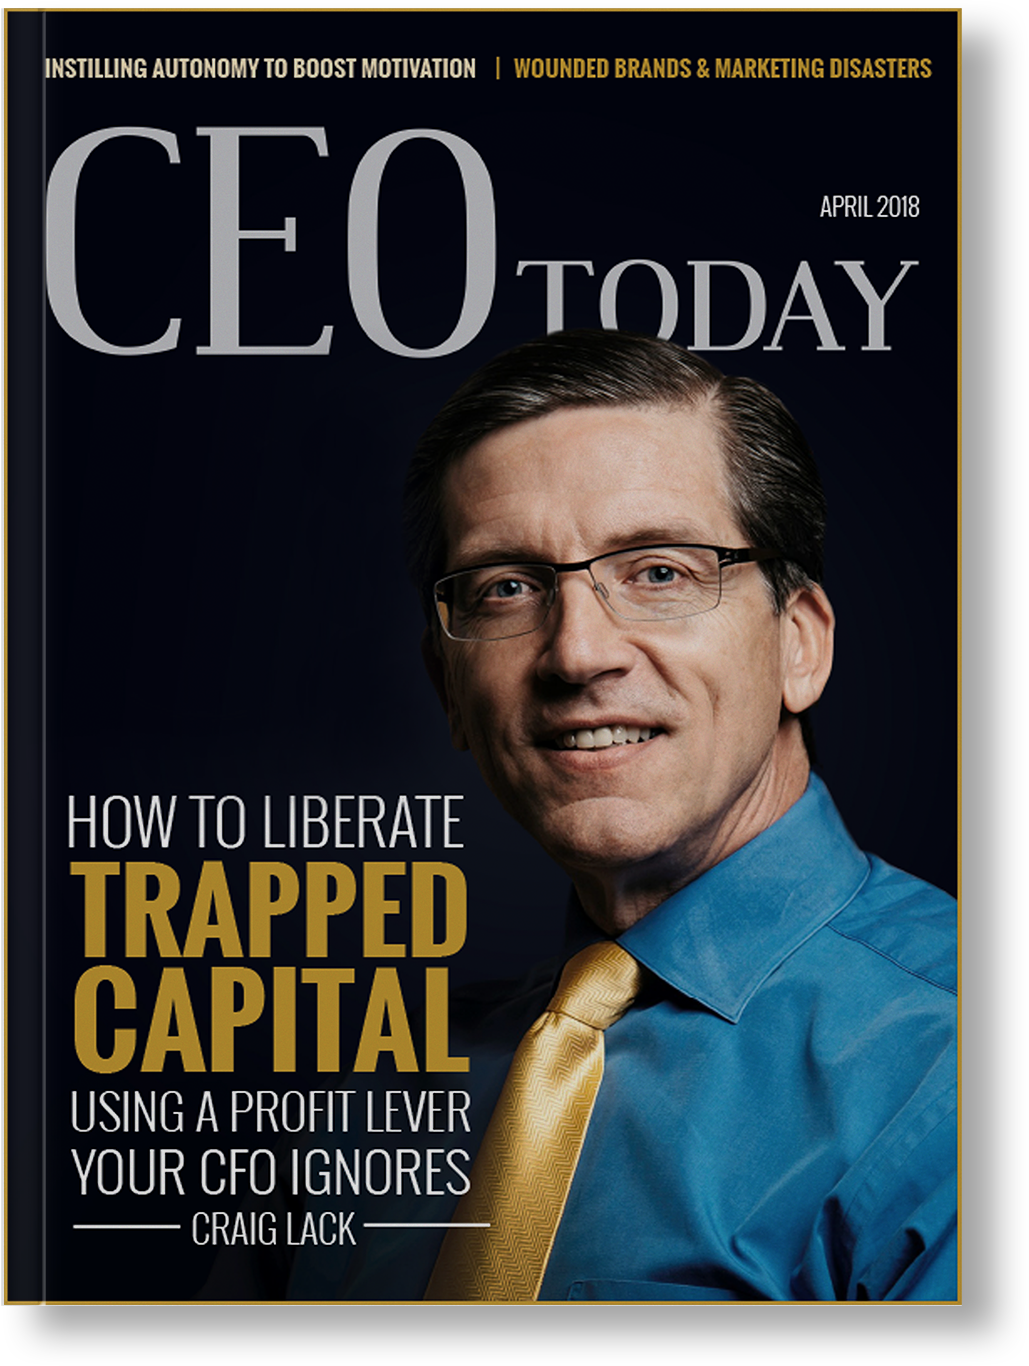 CEO-Today-Craig-Lack - Craig Lack